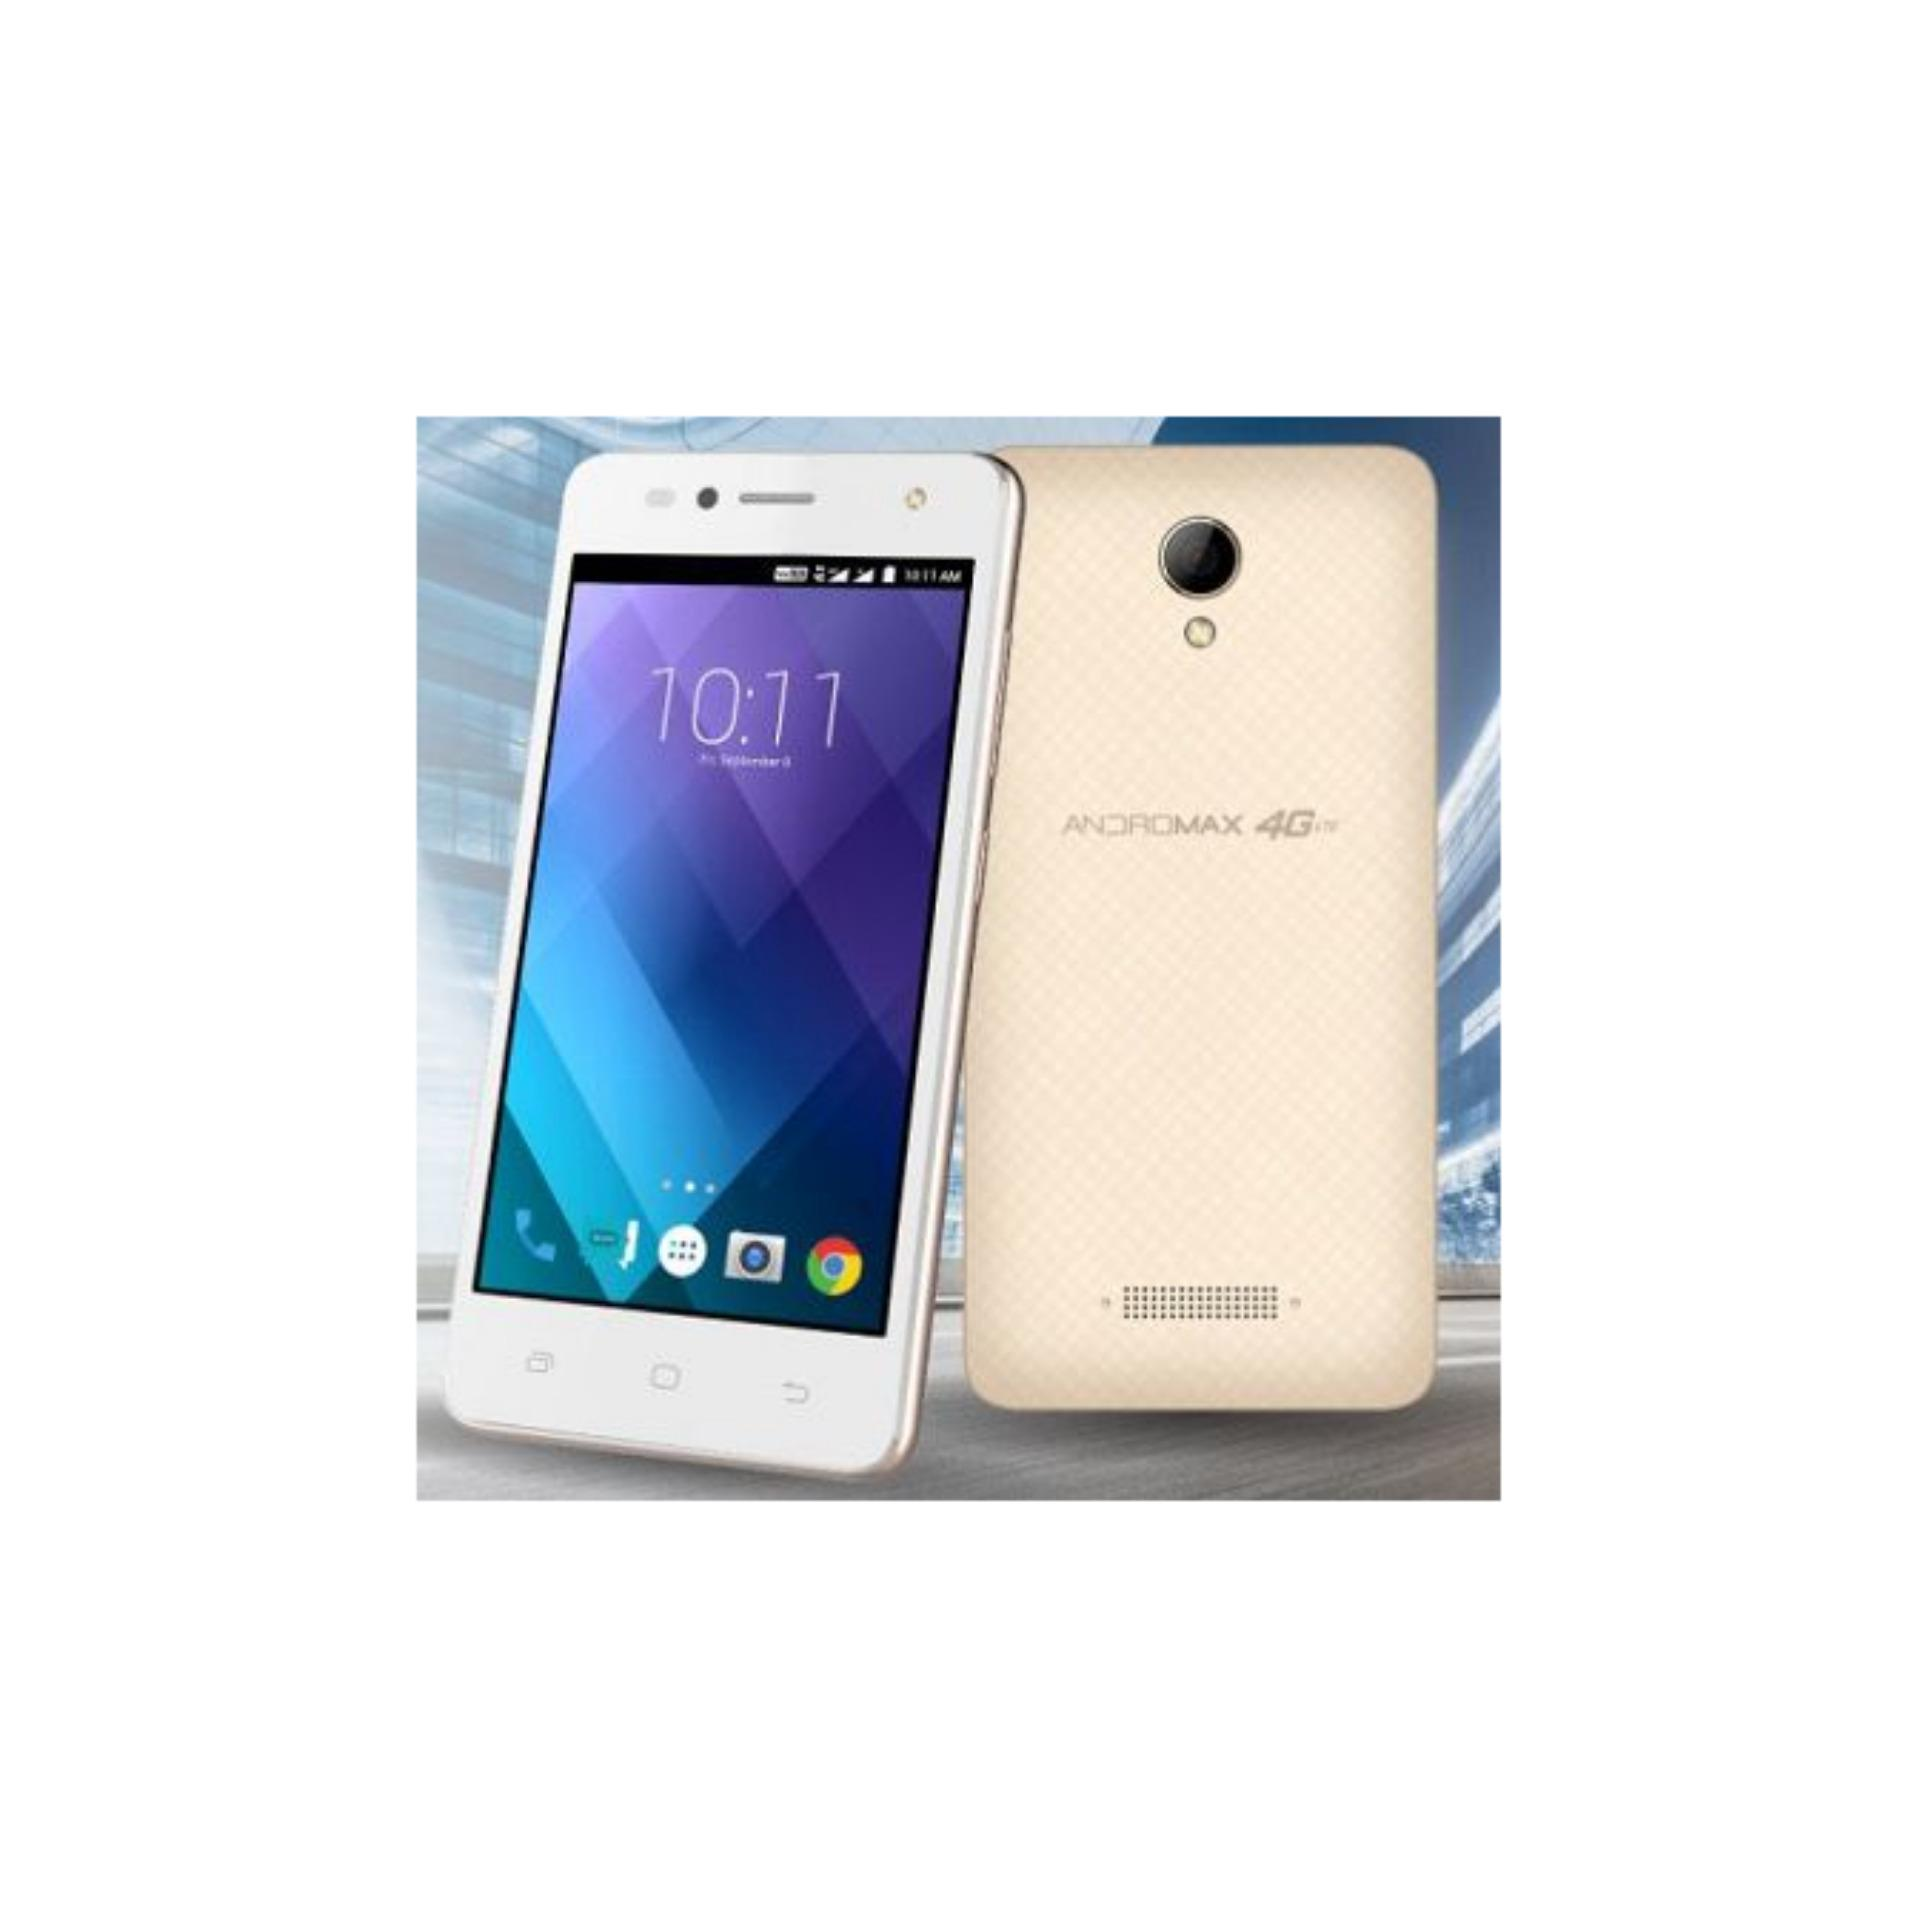 PENAWARAN Oppo A37 2GB 16GB Black Smartphone Beauty Camera